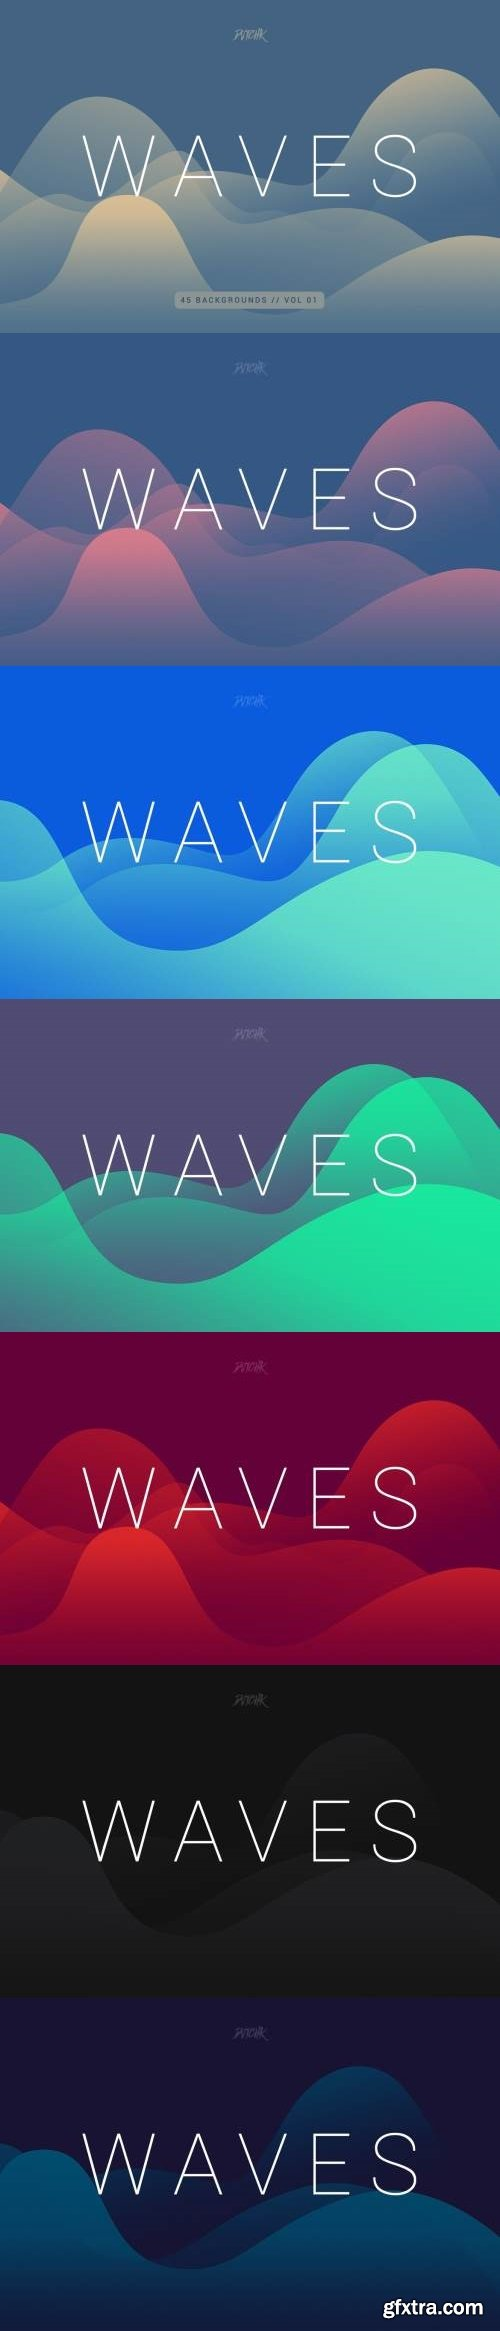 Waves | Smooth Colorful Backgrounds | Vol. 01